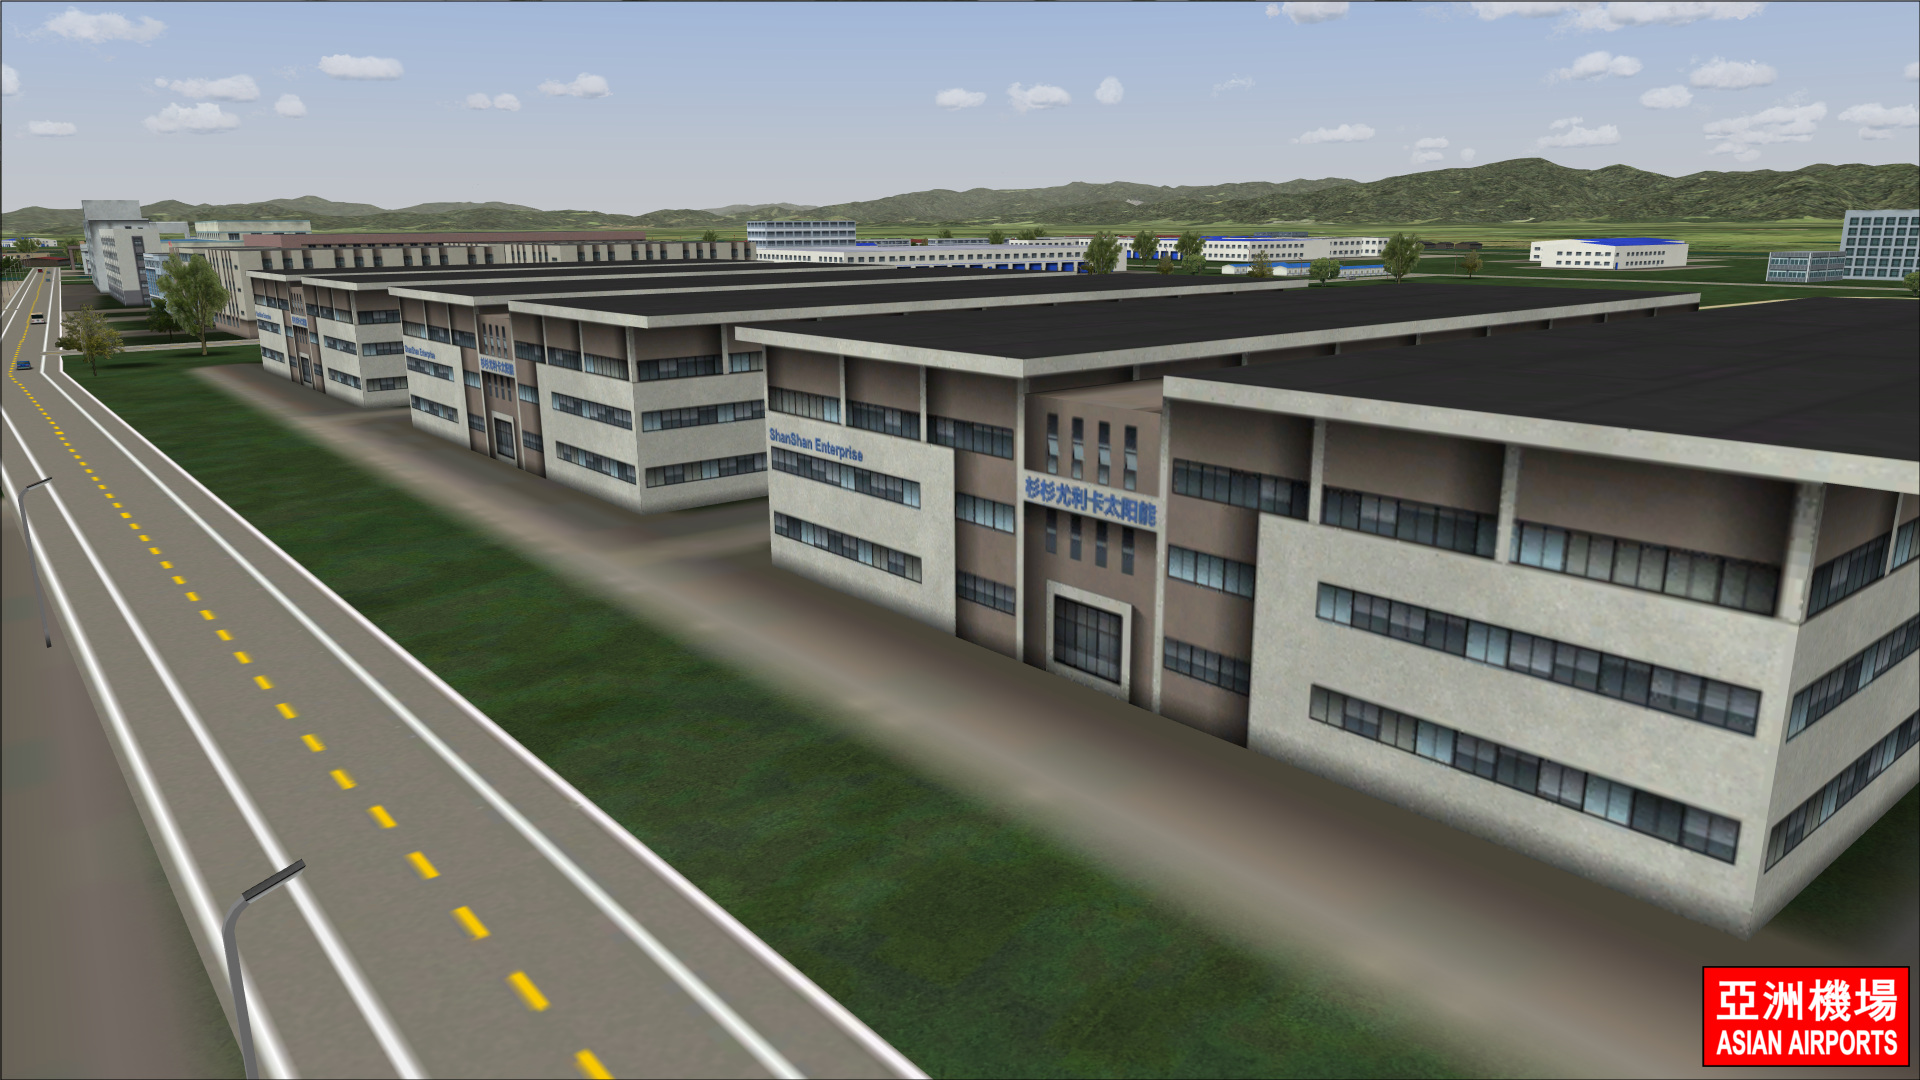 ASIAN AIRPORTS - NINGBO LISHE INTERNATIONAL ZSNB P3D4